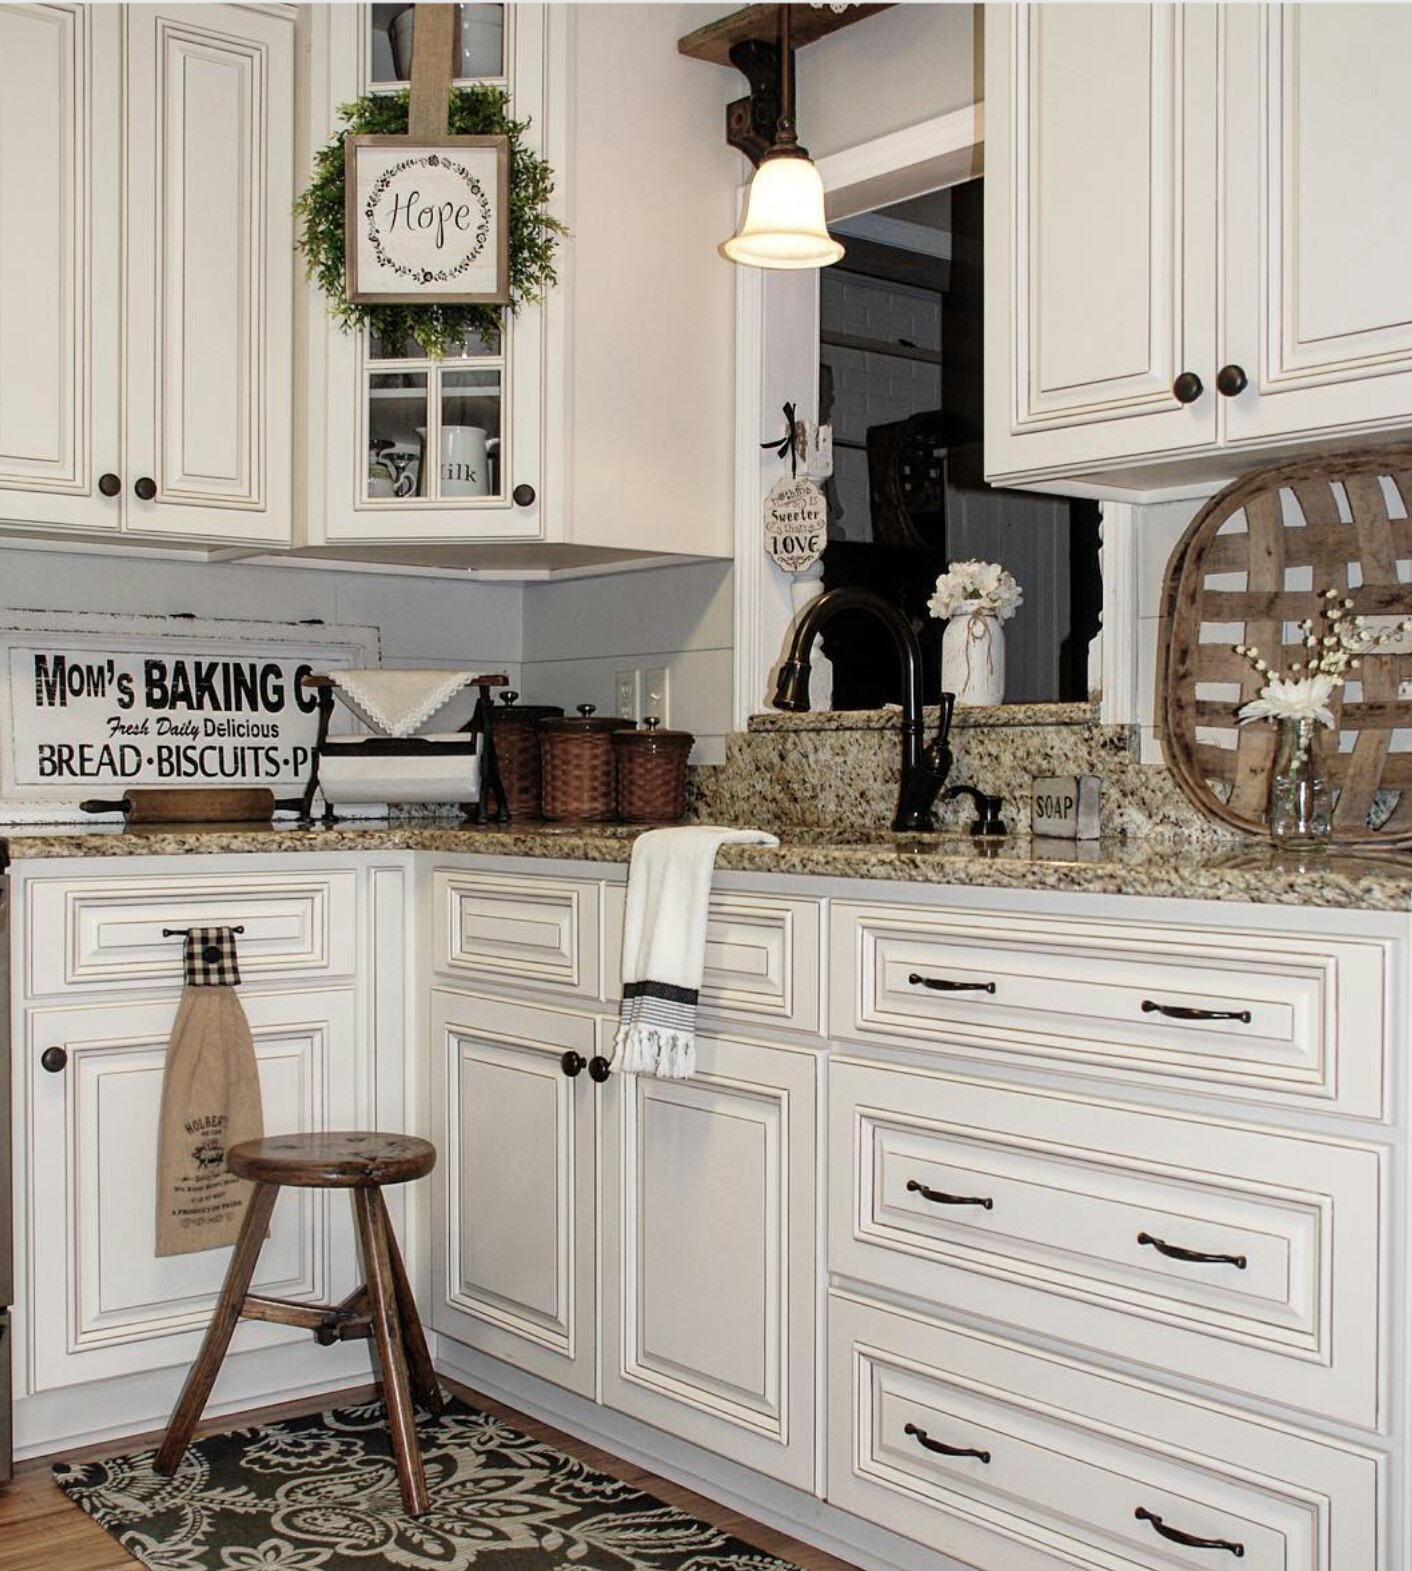 Modern farmhouse kitchen .Light and bright with wood brown